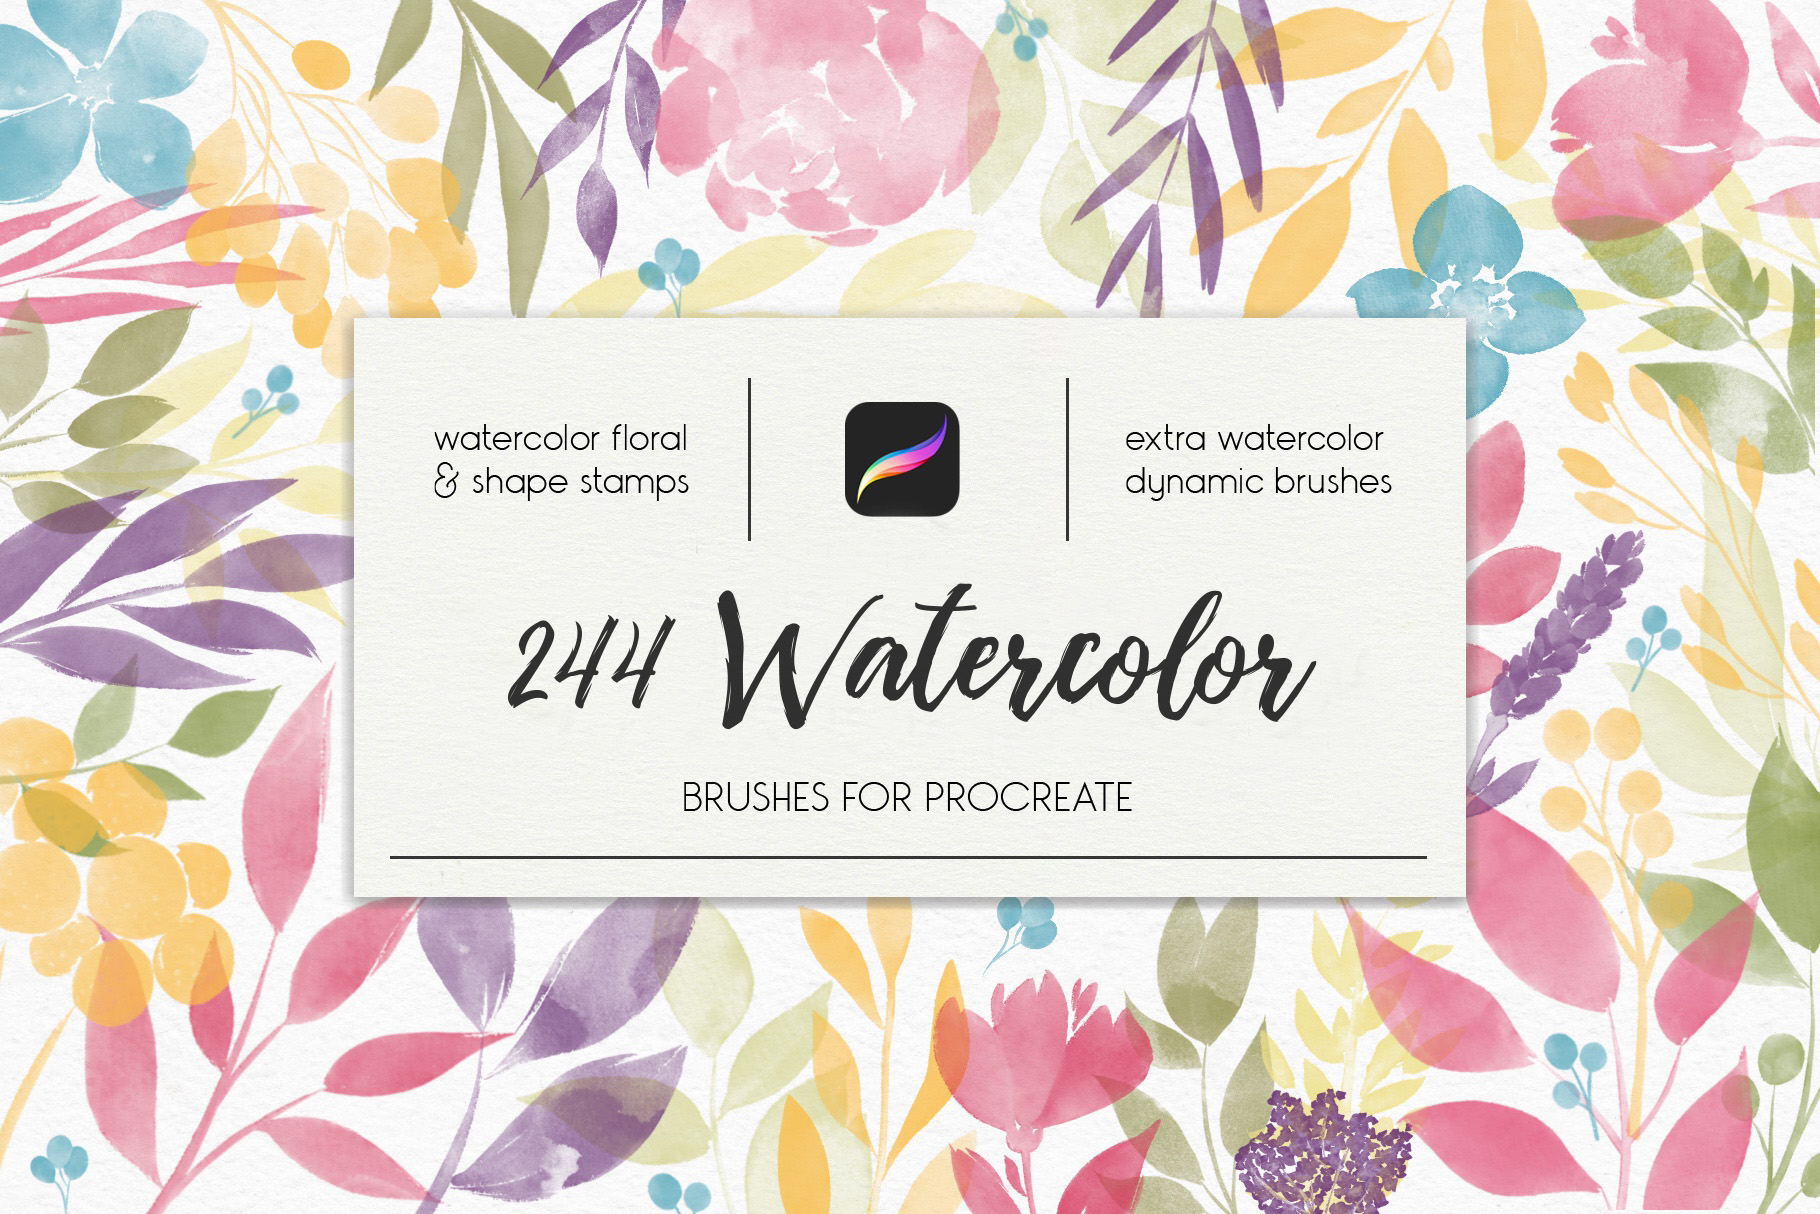 244 Watercolor Brushes For Procreate example image 1